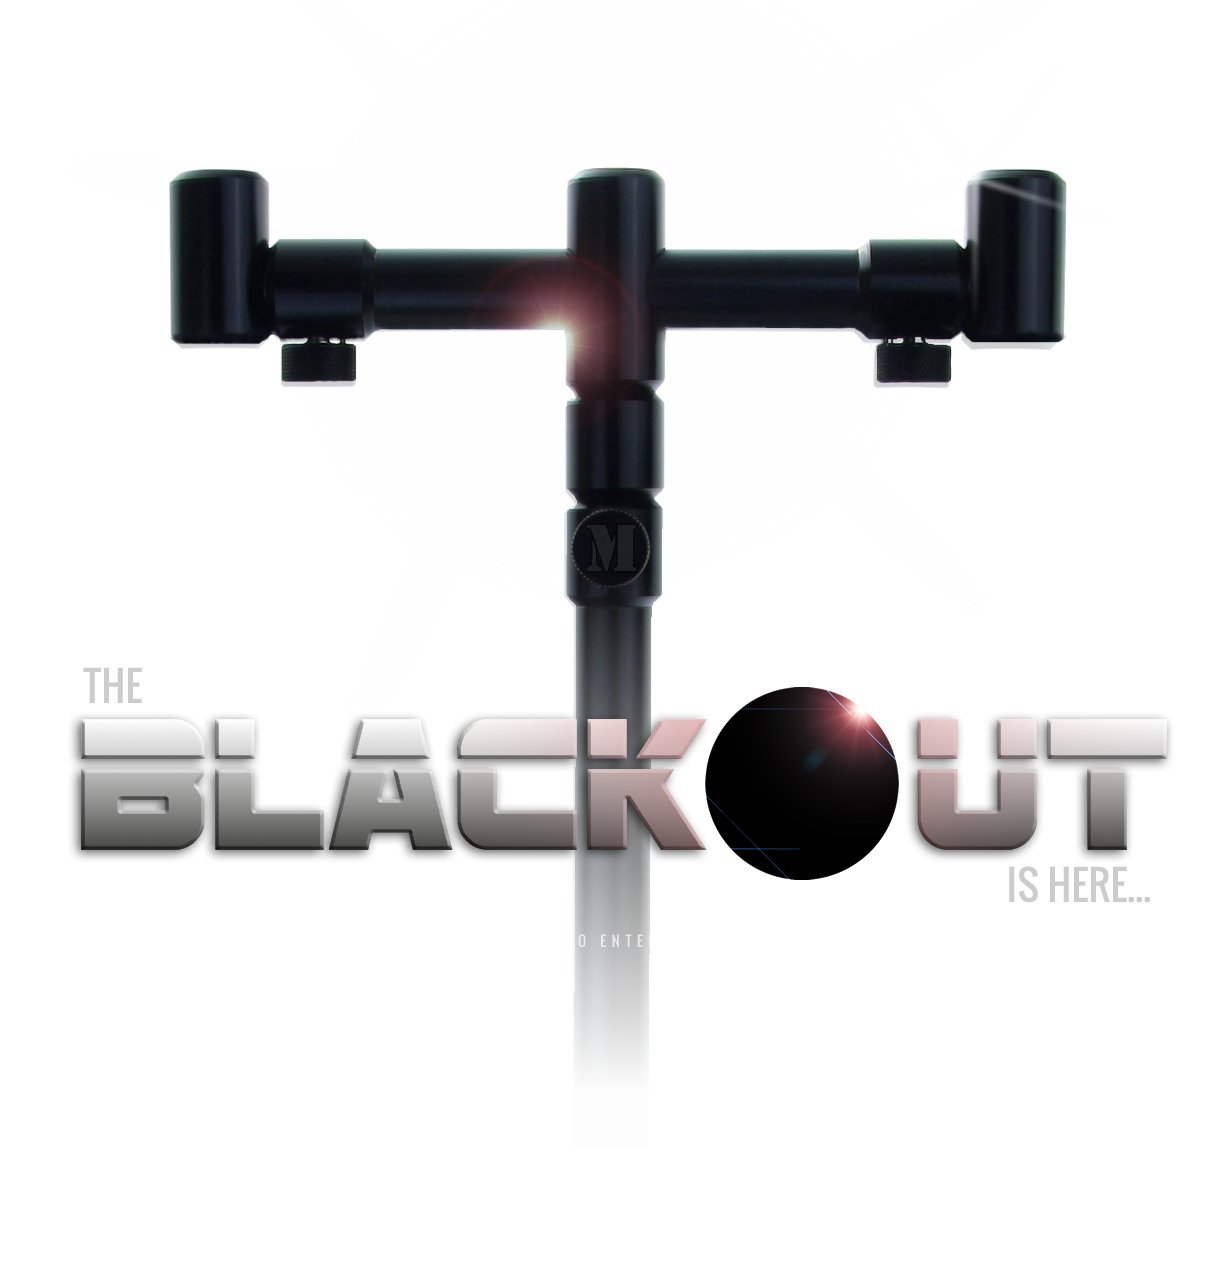 Matrix Innovations - The Blackout is here!